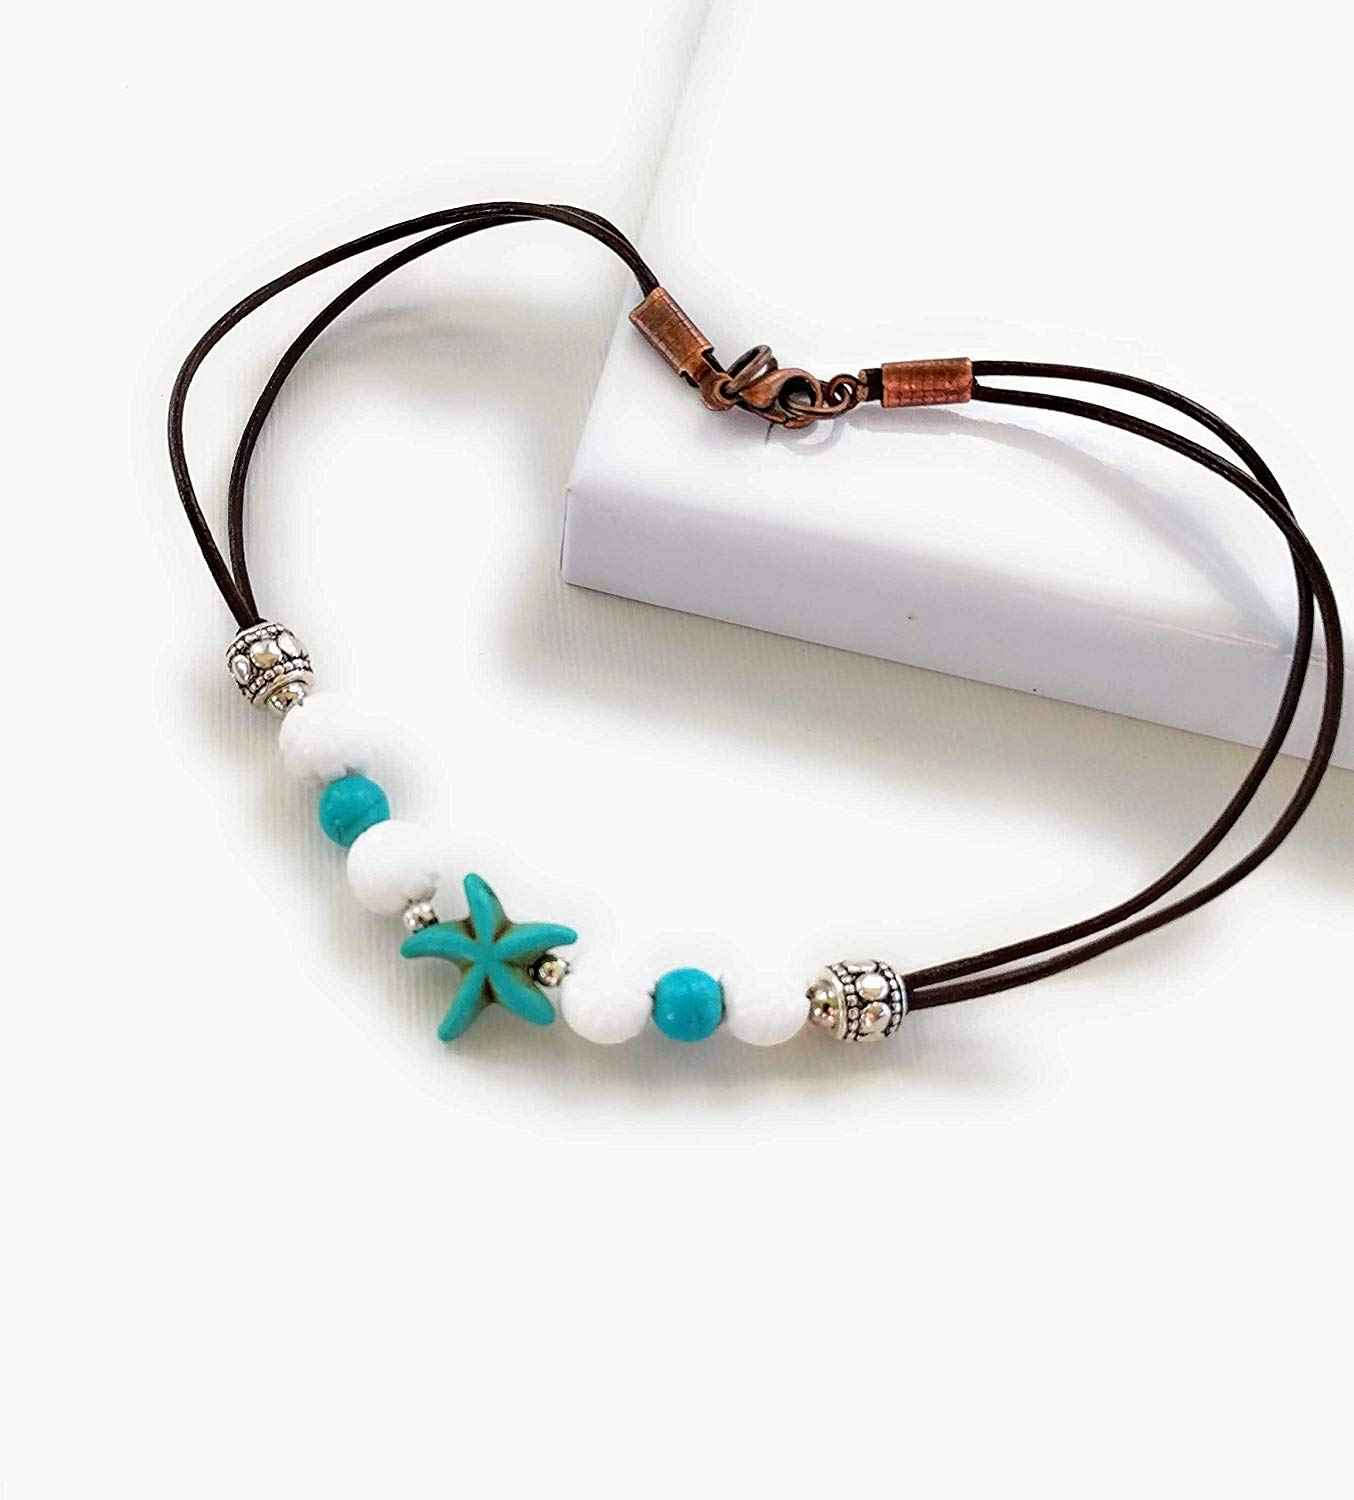 Beach Foot Bracelet Stone Handcrafted Anklet CHENCAN01 Turquoise Anklet Turquoise and Snow Ankle Bracelet